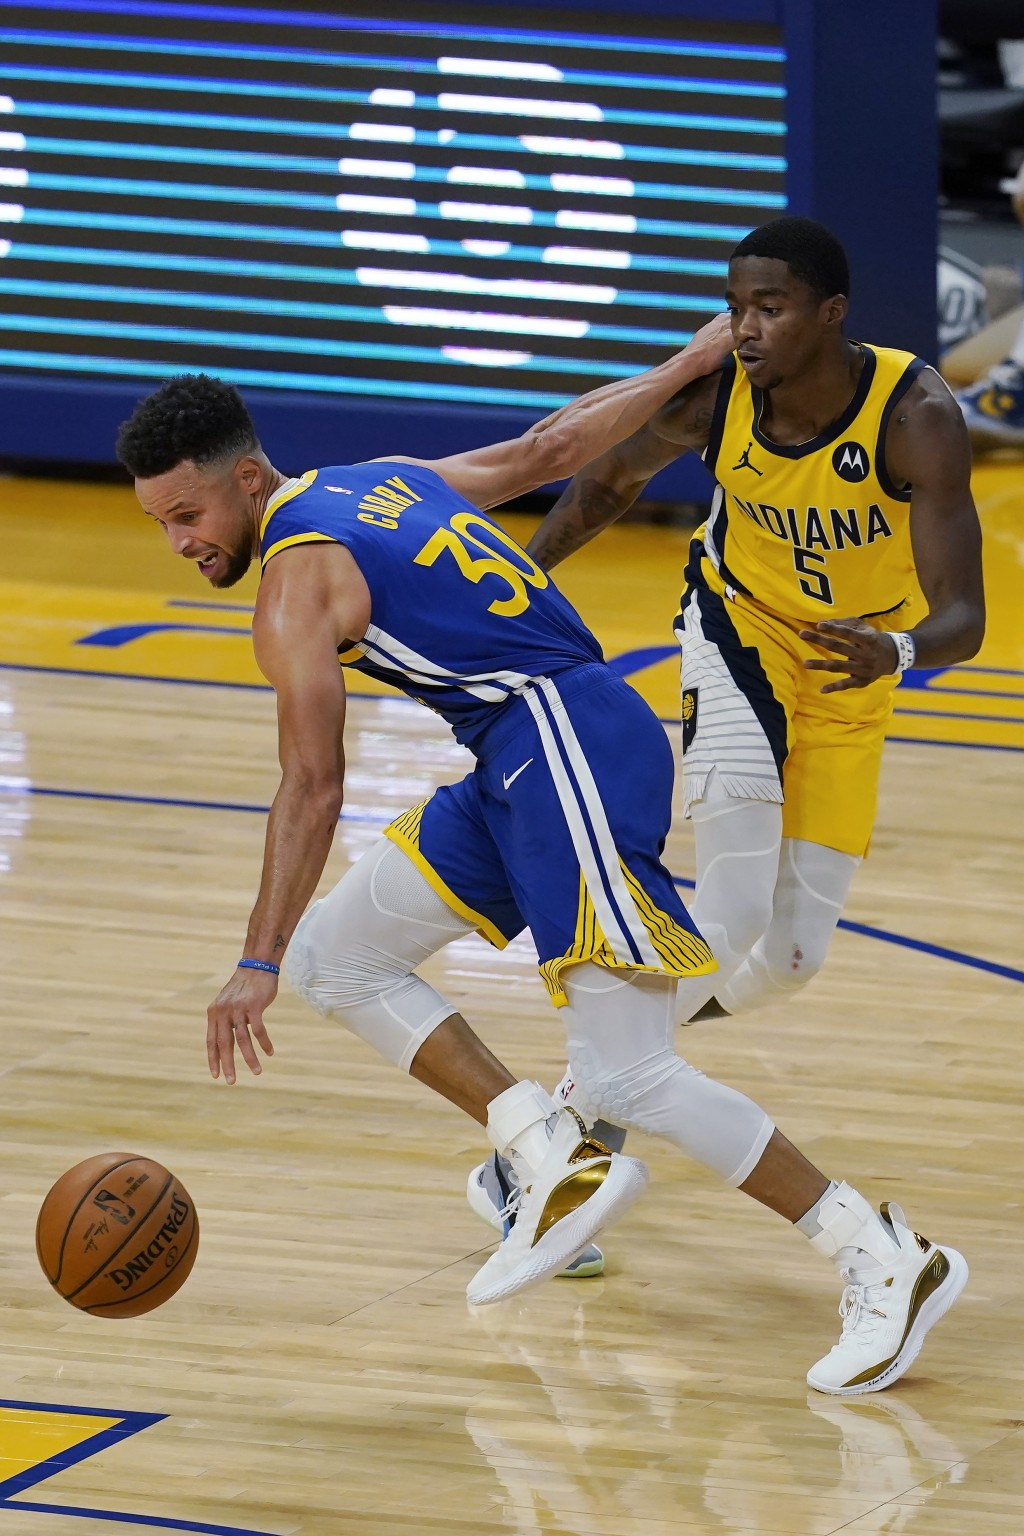 Golden State Warriors guard Stephen Curry (30) drives against Indiana Pacers guard Edmond Sumner (5) during the first half of an NBA basketball game i...